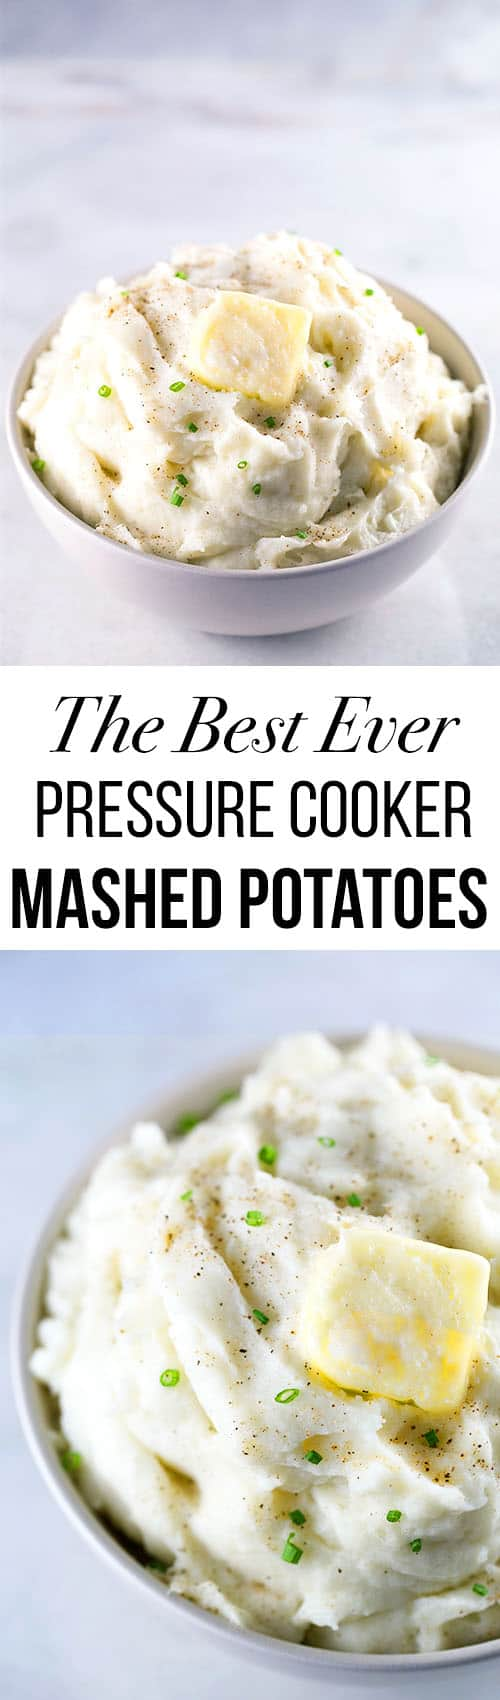 Pressure Cooker Mashed Potatoes   The BEST recipe for creamy mashed potatoes.   Garlic Variation Included